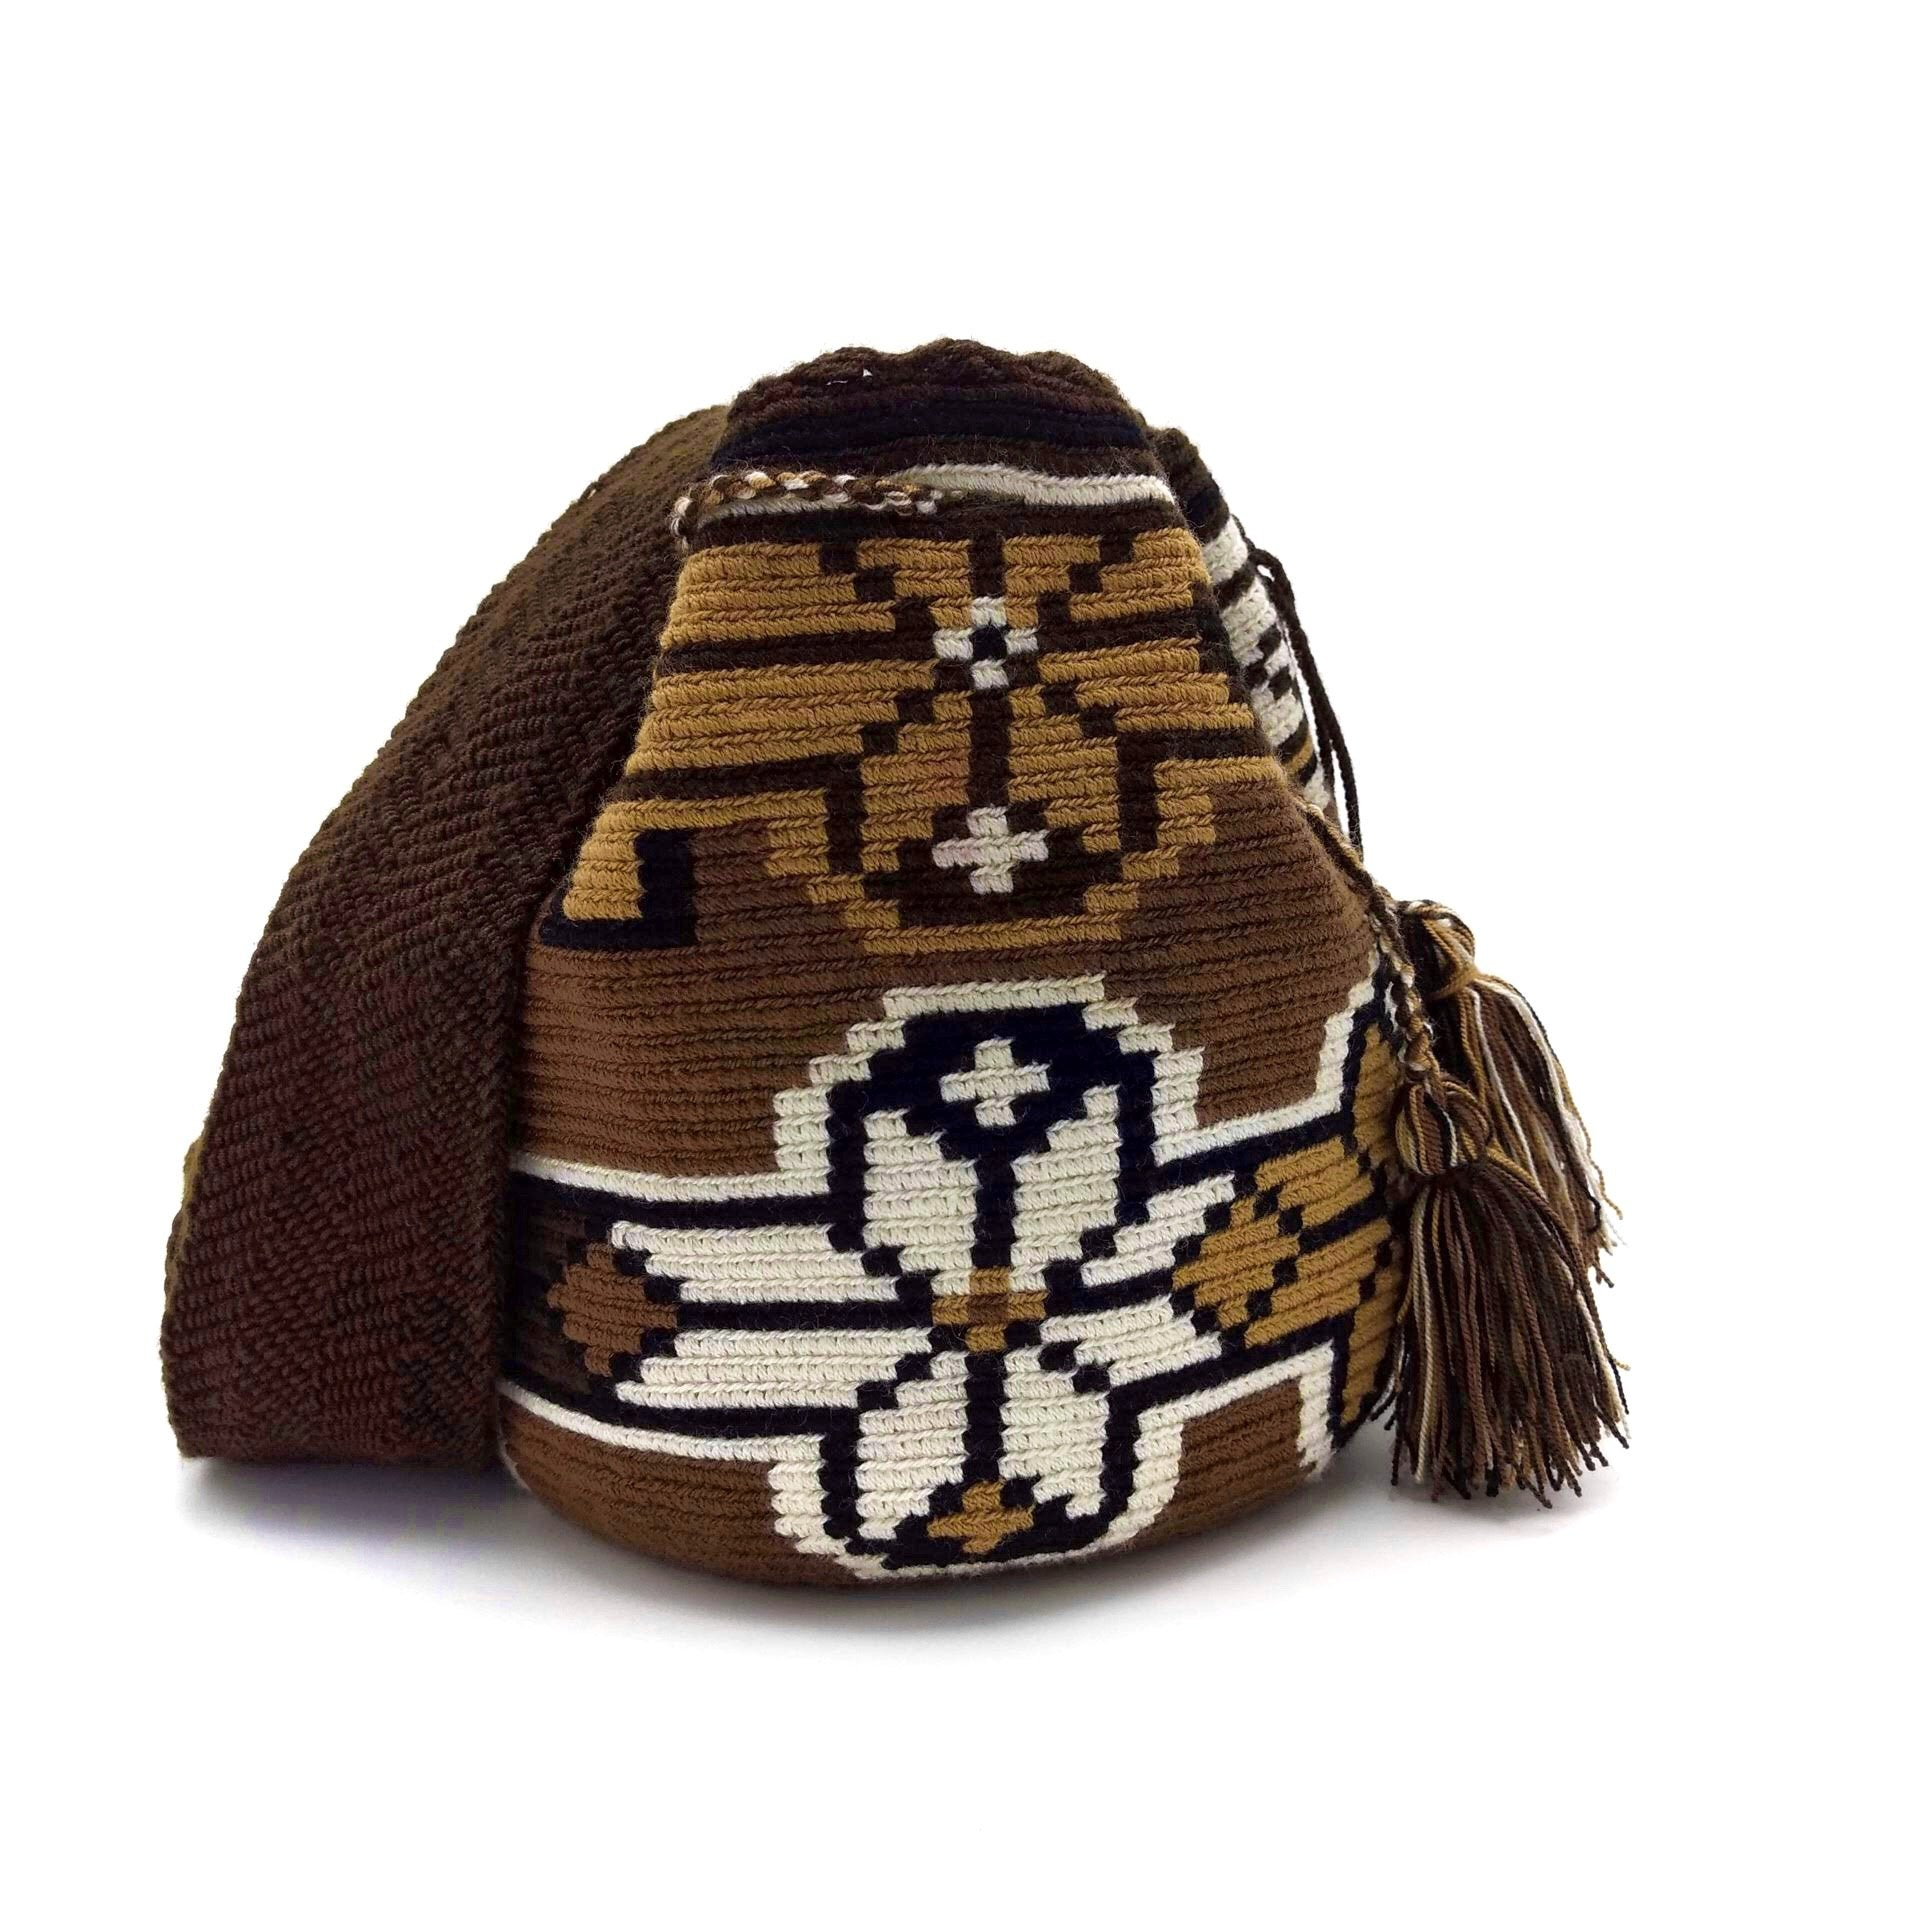 Front view of a beautiful Wayuu Mochila Bag with a great array of colors such as Beige, Black, Tan (Light-Brown) and Dark-Brown.